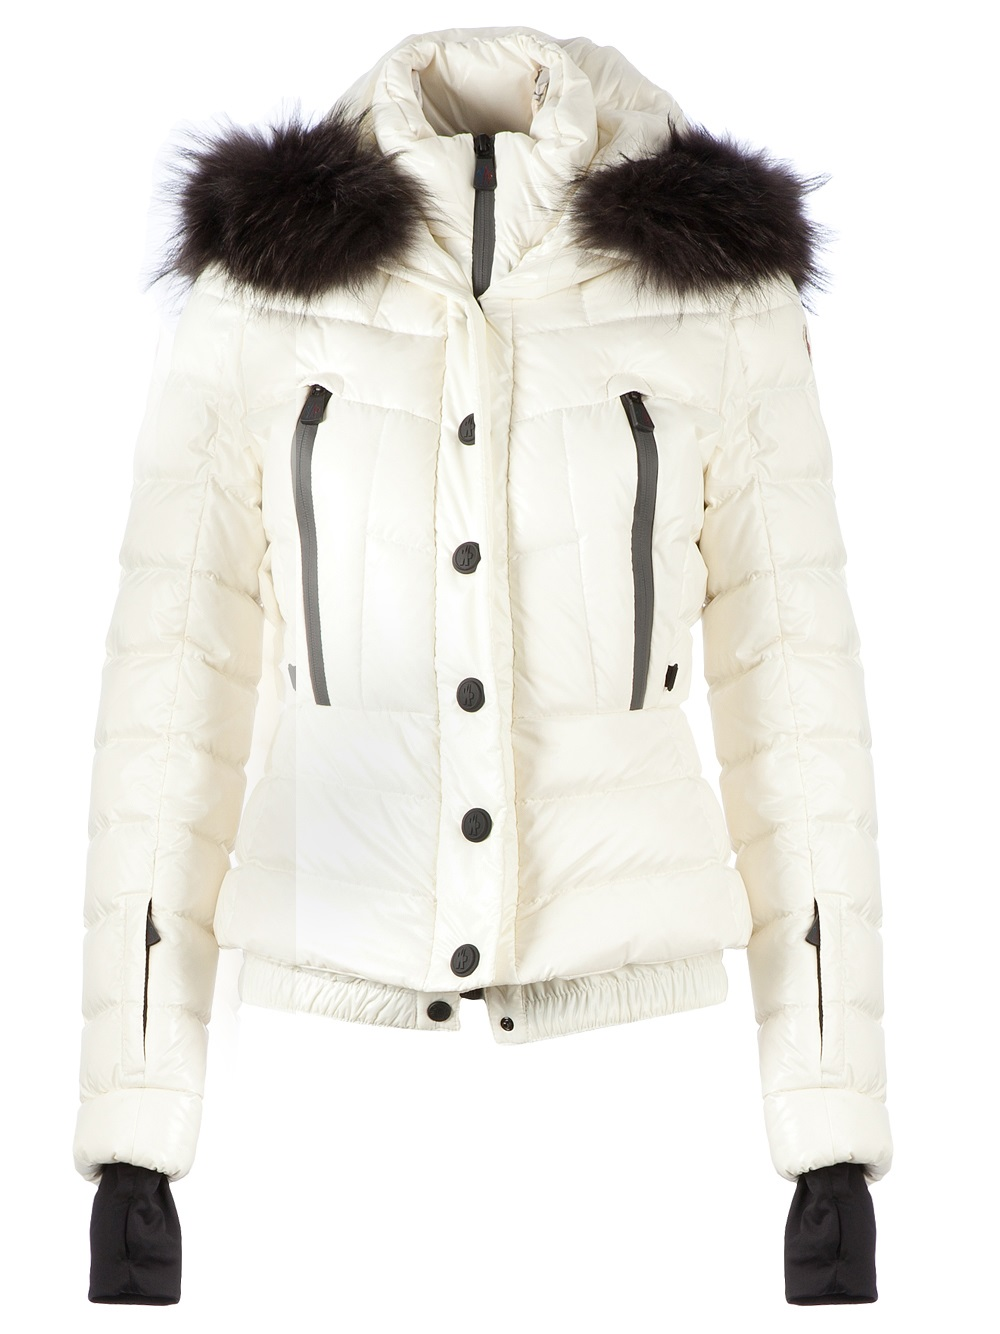 add55820f151 Bever Bever White Jacket Moncler In Lyst xYqpZBzfw